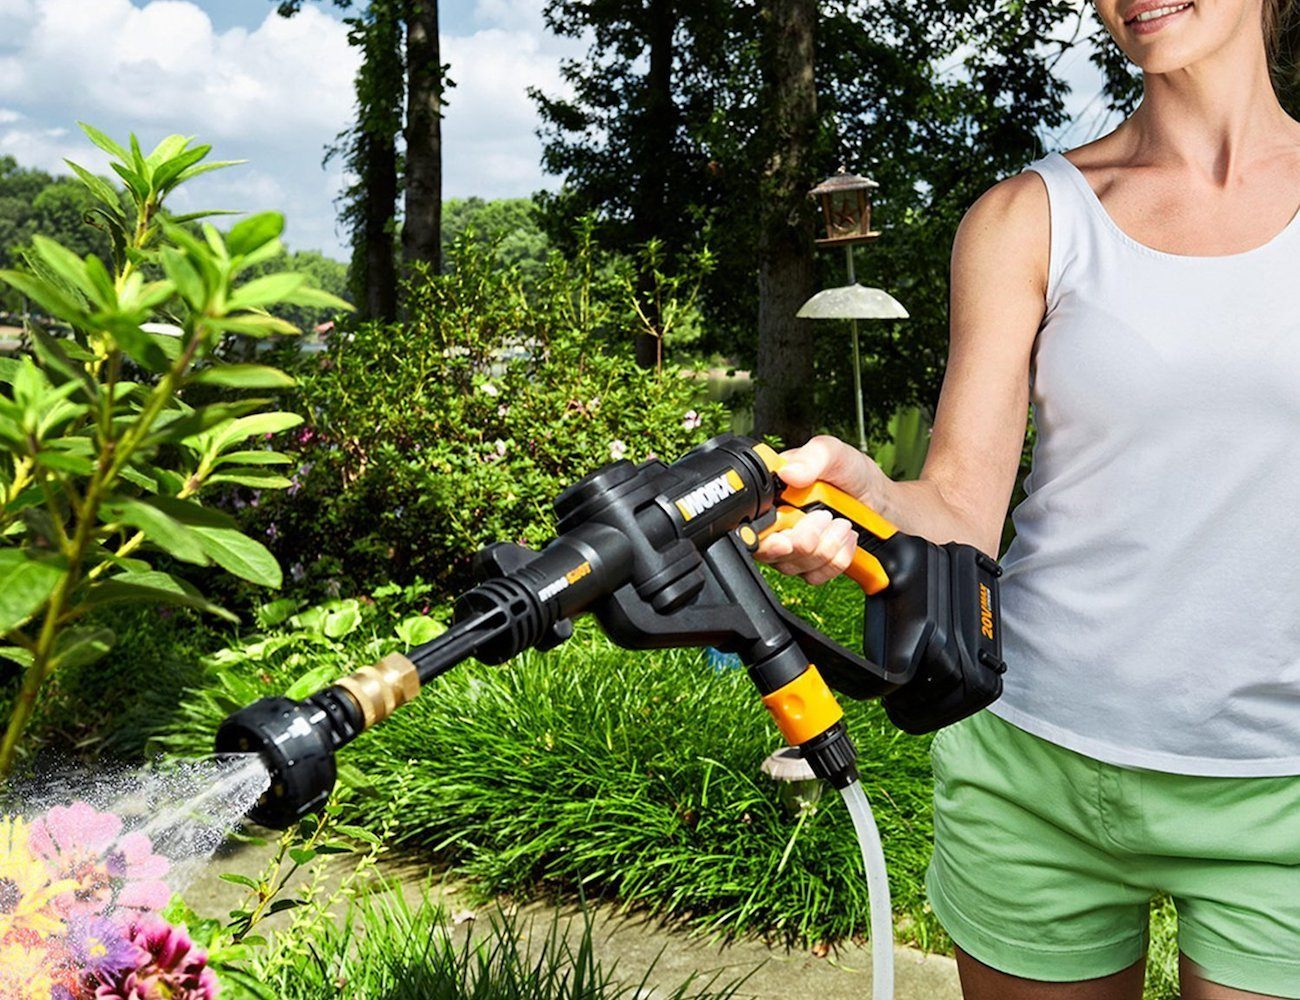 WORX Portable Spot-Cleaning Device